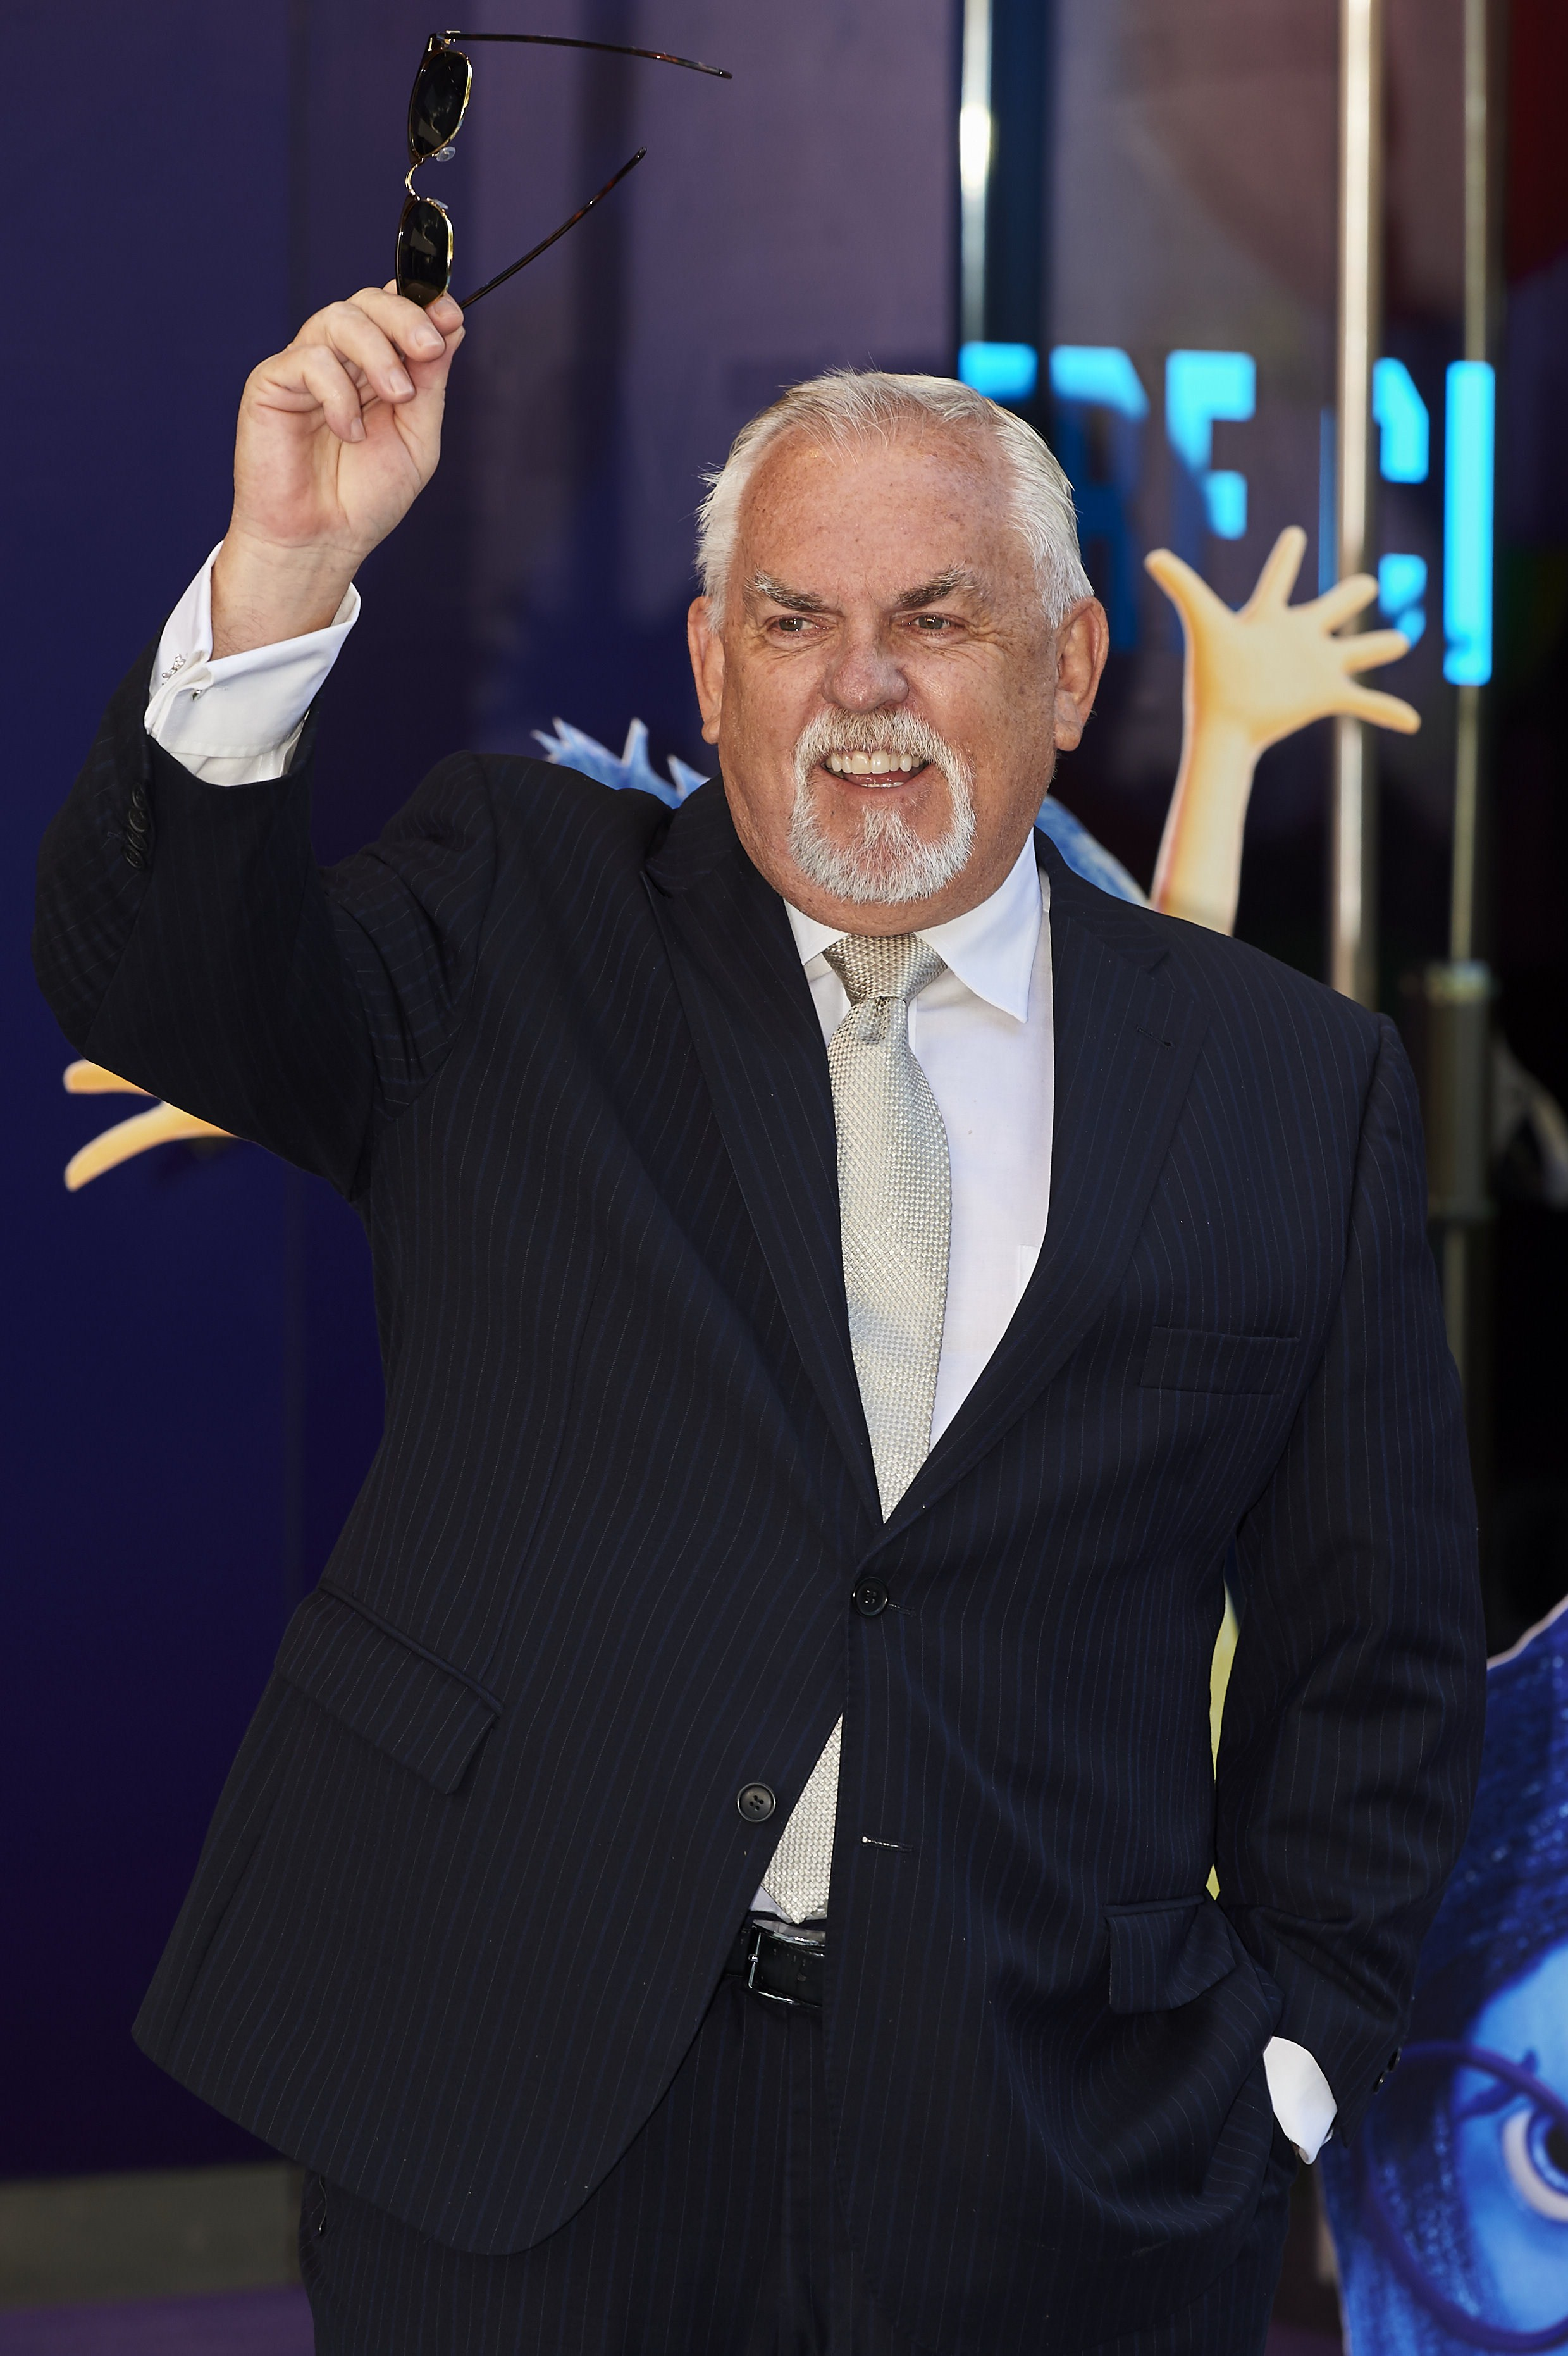 US actor John Ratzenberger poses ahead of a gala screening of the movie Inside Out in central London on July 19, 2015. AFP PHOTO / NIKLAS HALLE'N (Photo credit should read NIKLAS HALLE'N/AFP/Getty Images)